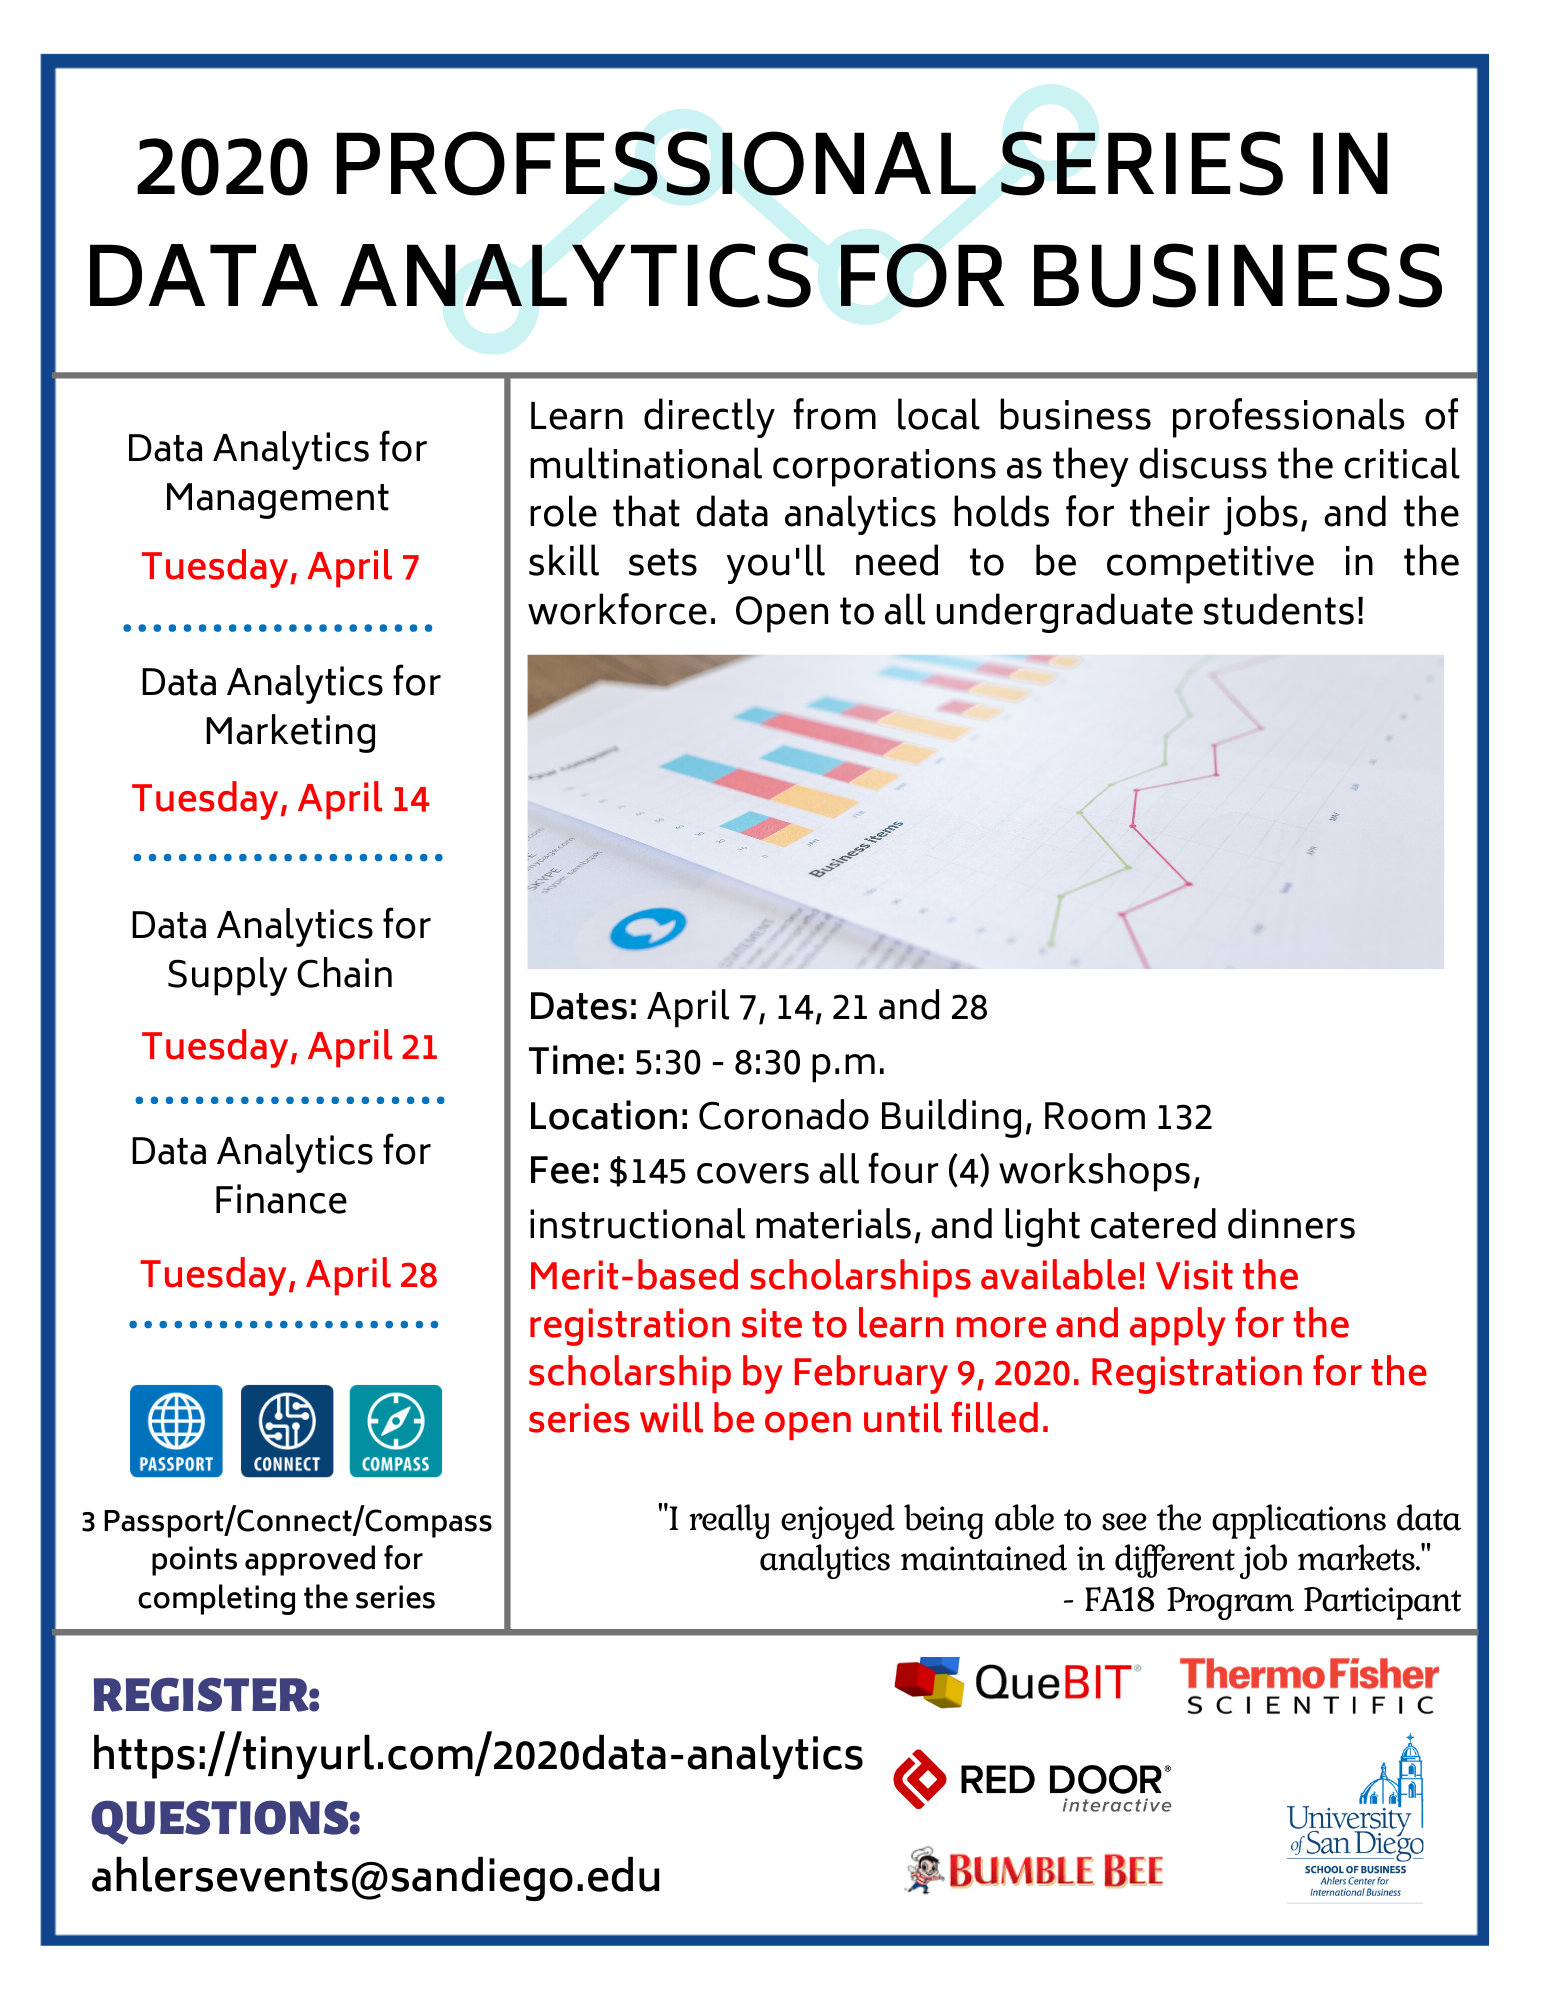 2020 Professional Series in Data Analytics for Business Flyer